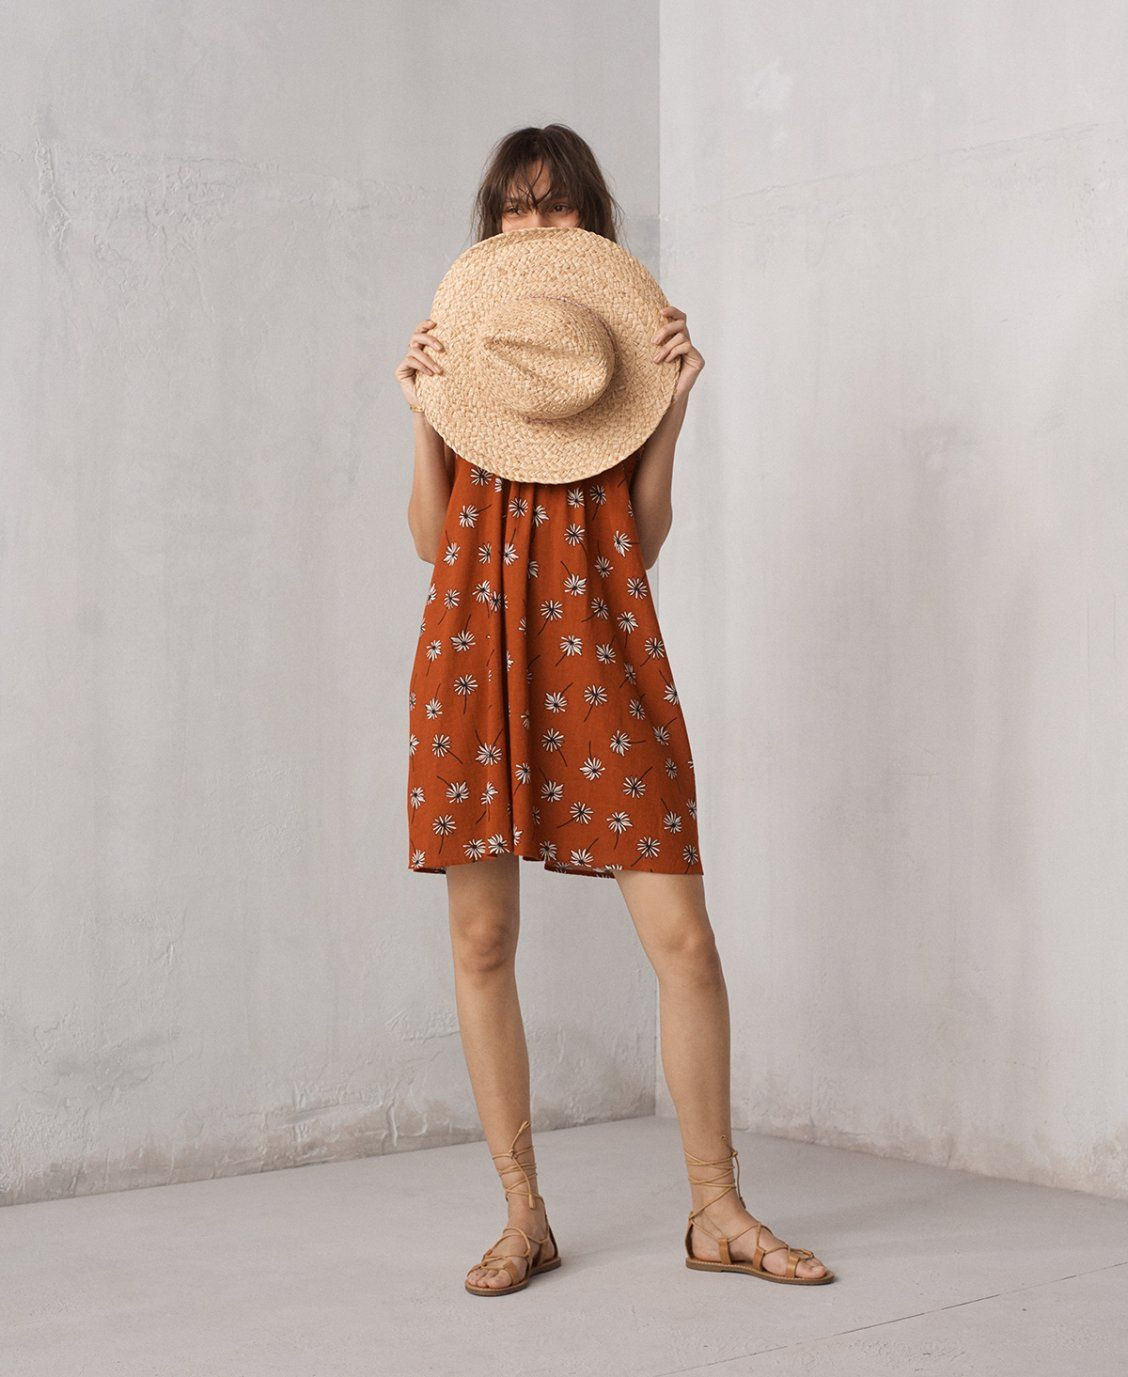 6809f5f0fbe1 madewell x biltmore braided fedora hat worn with tulum cover-up dress +  boardwalk lace-up sandals.